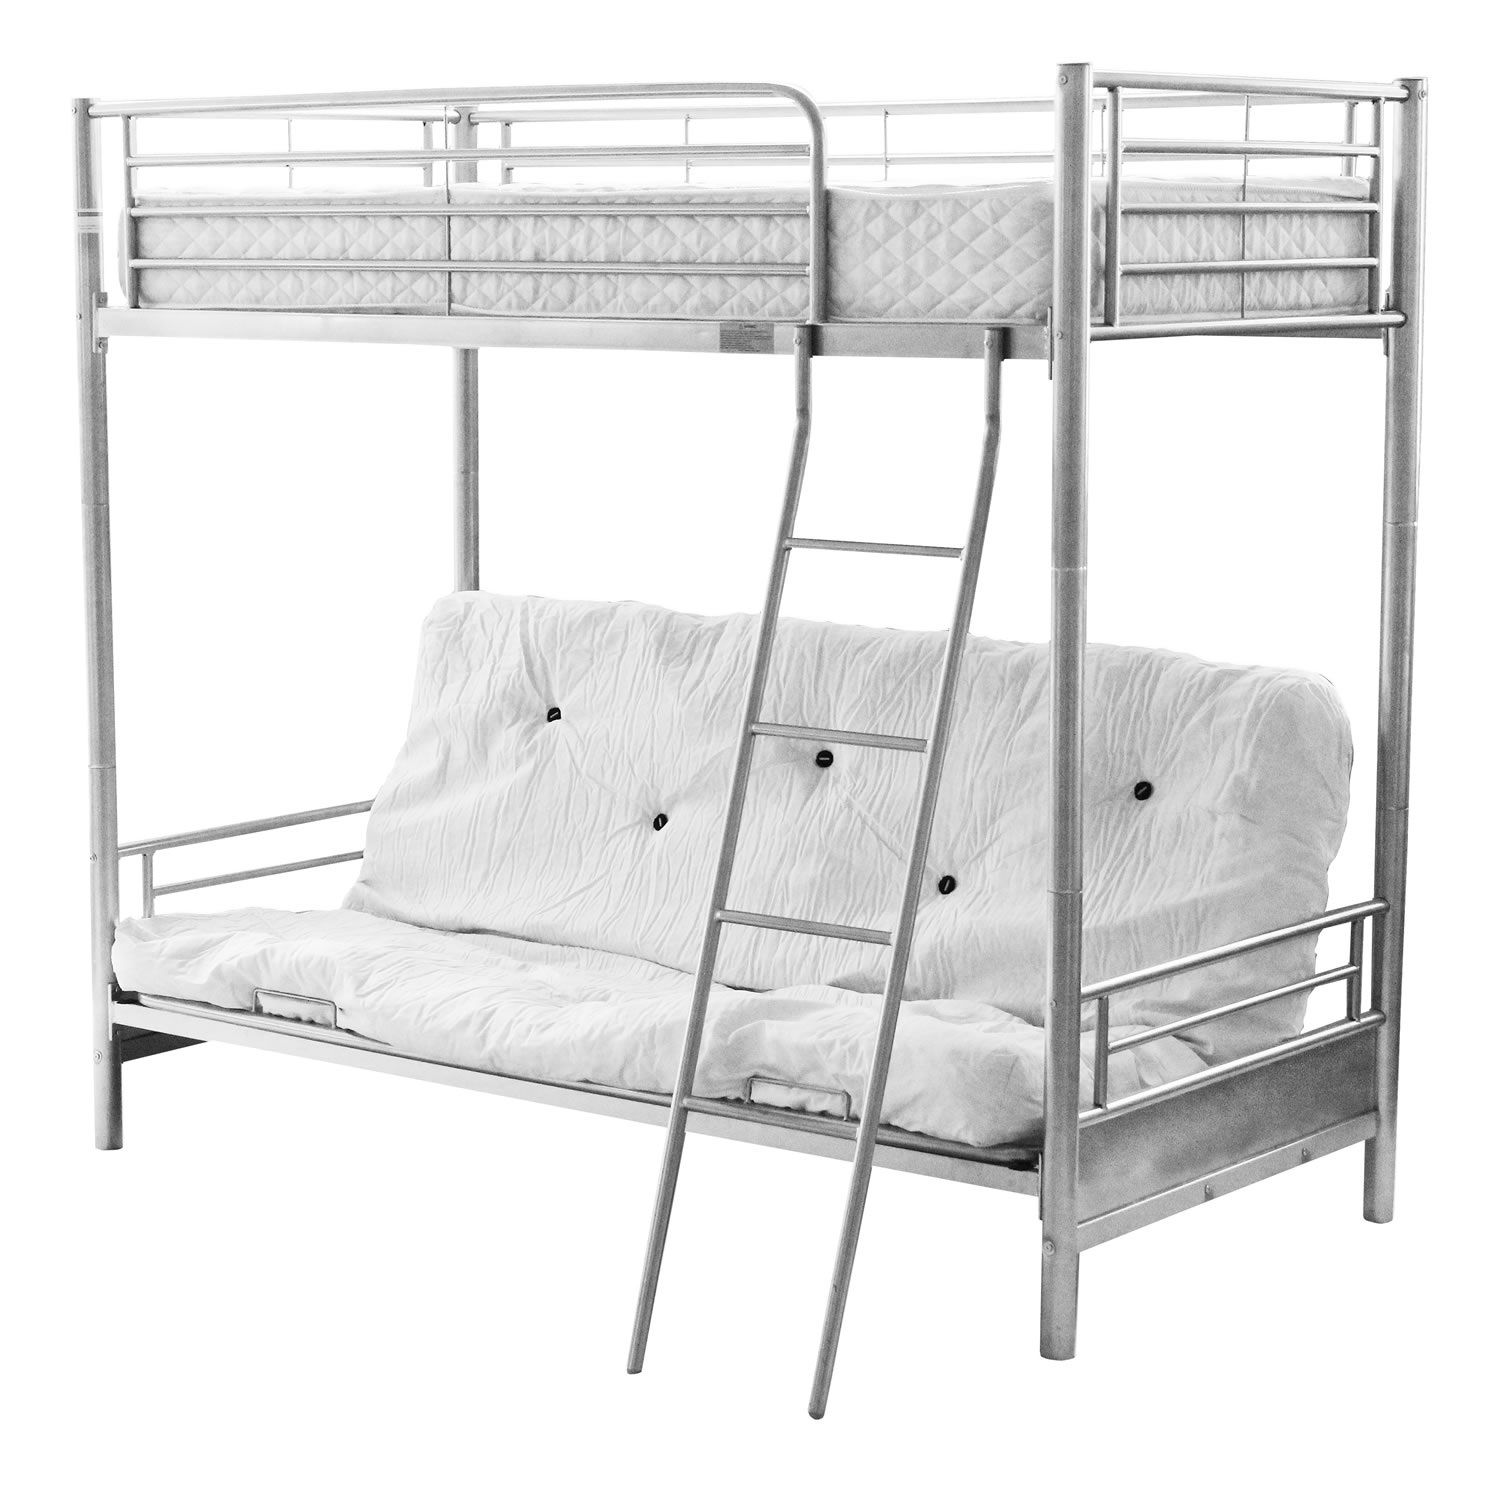 70 Metal Frame Futon Bunk Beds Interior Design For Bedrooms Check More At Http